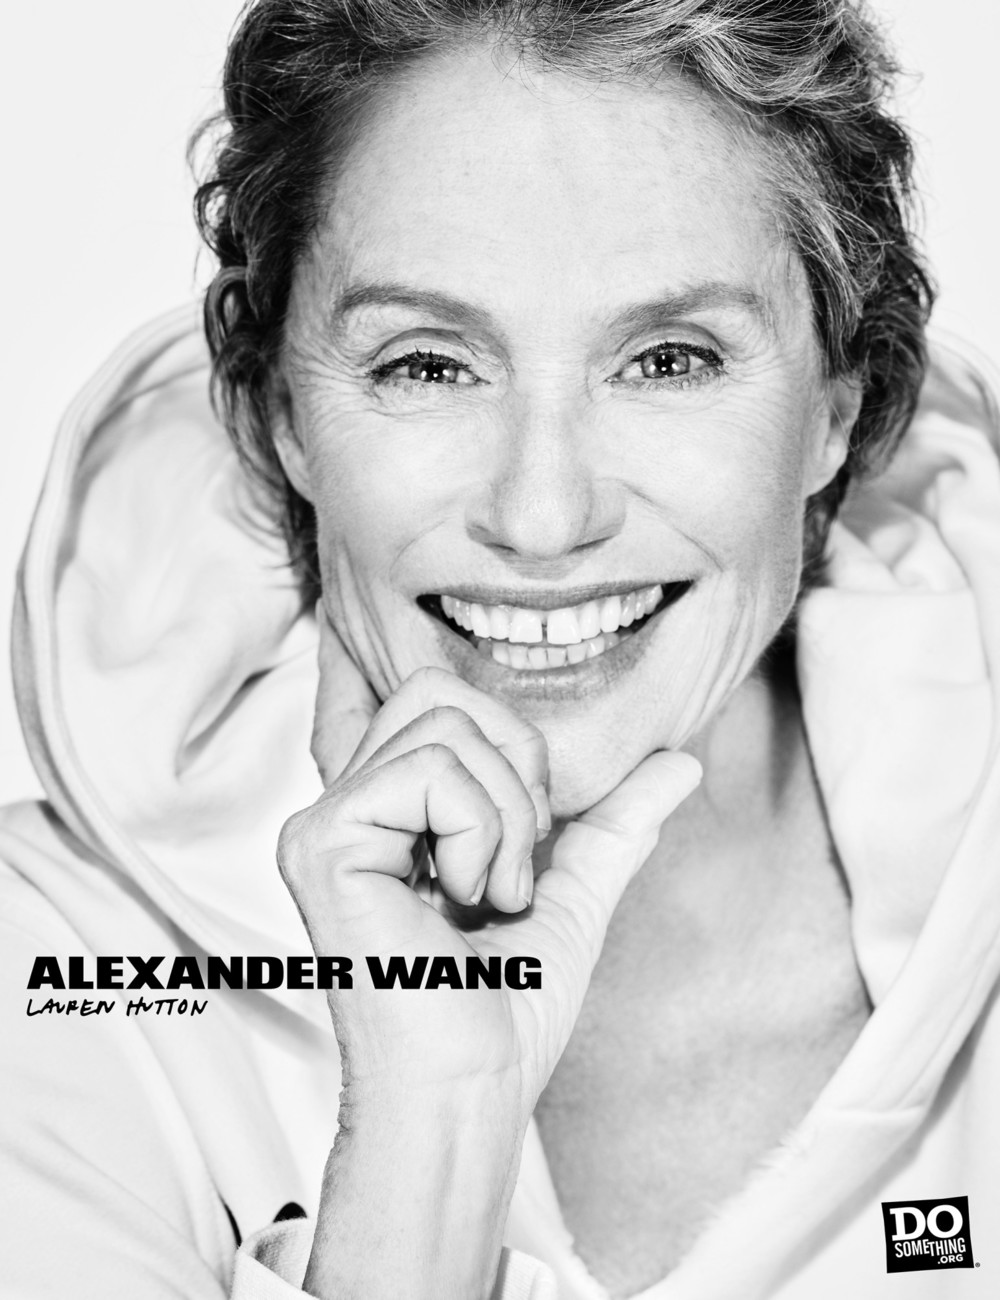 37-LAUREN-HUTTON-AW-X-DOSOMETHING-1542x2004.jpg